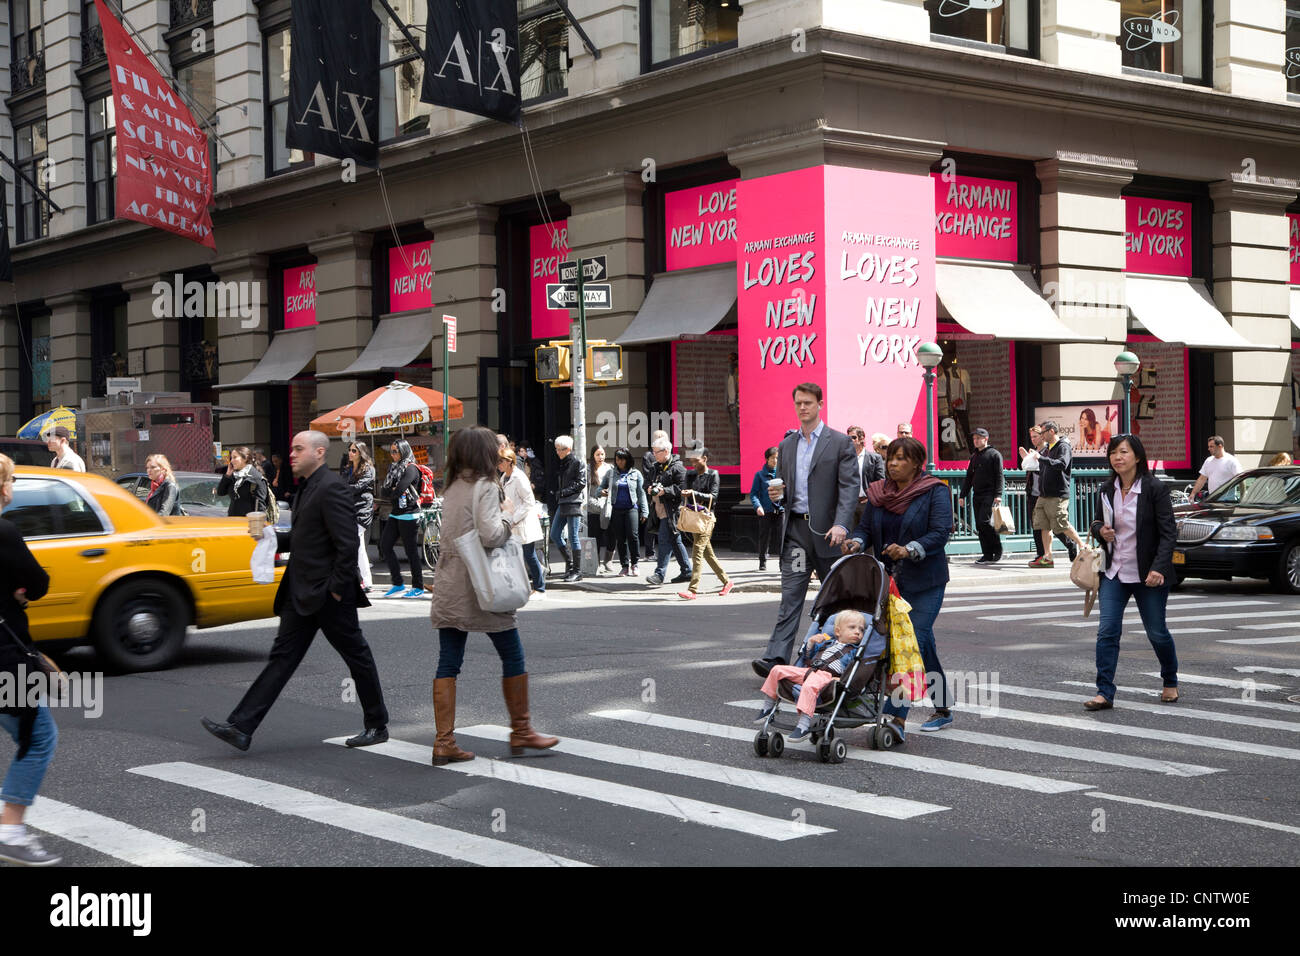 People in the crosswalk at 5th Avenue and 51st St. in NYC. - Stock Image